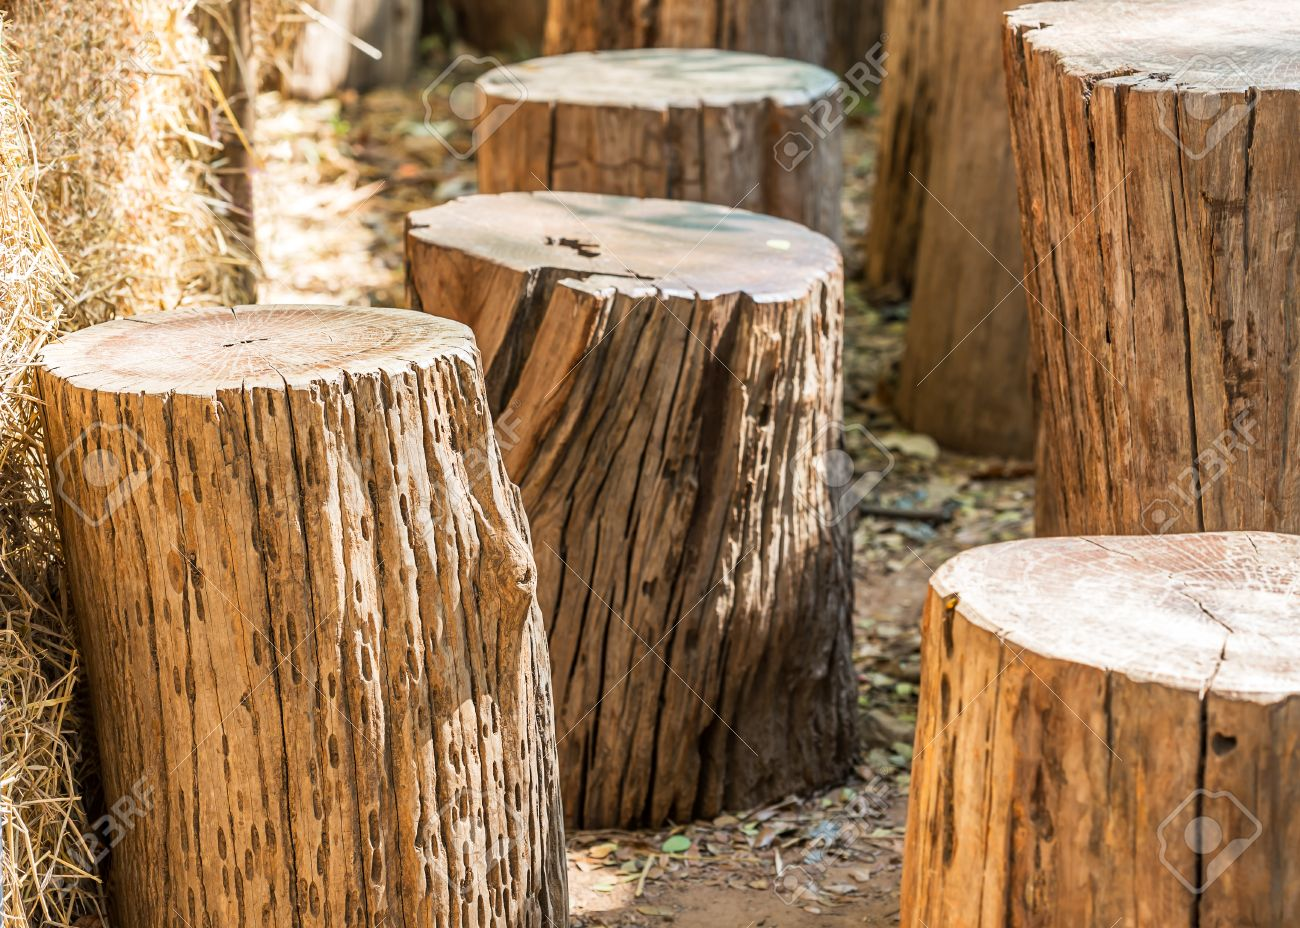 Natural garden furniture made from wooden log Stock Photo   35855175. Natural Garden Furniture Made From Wooden Log Stock Photo  Picture